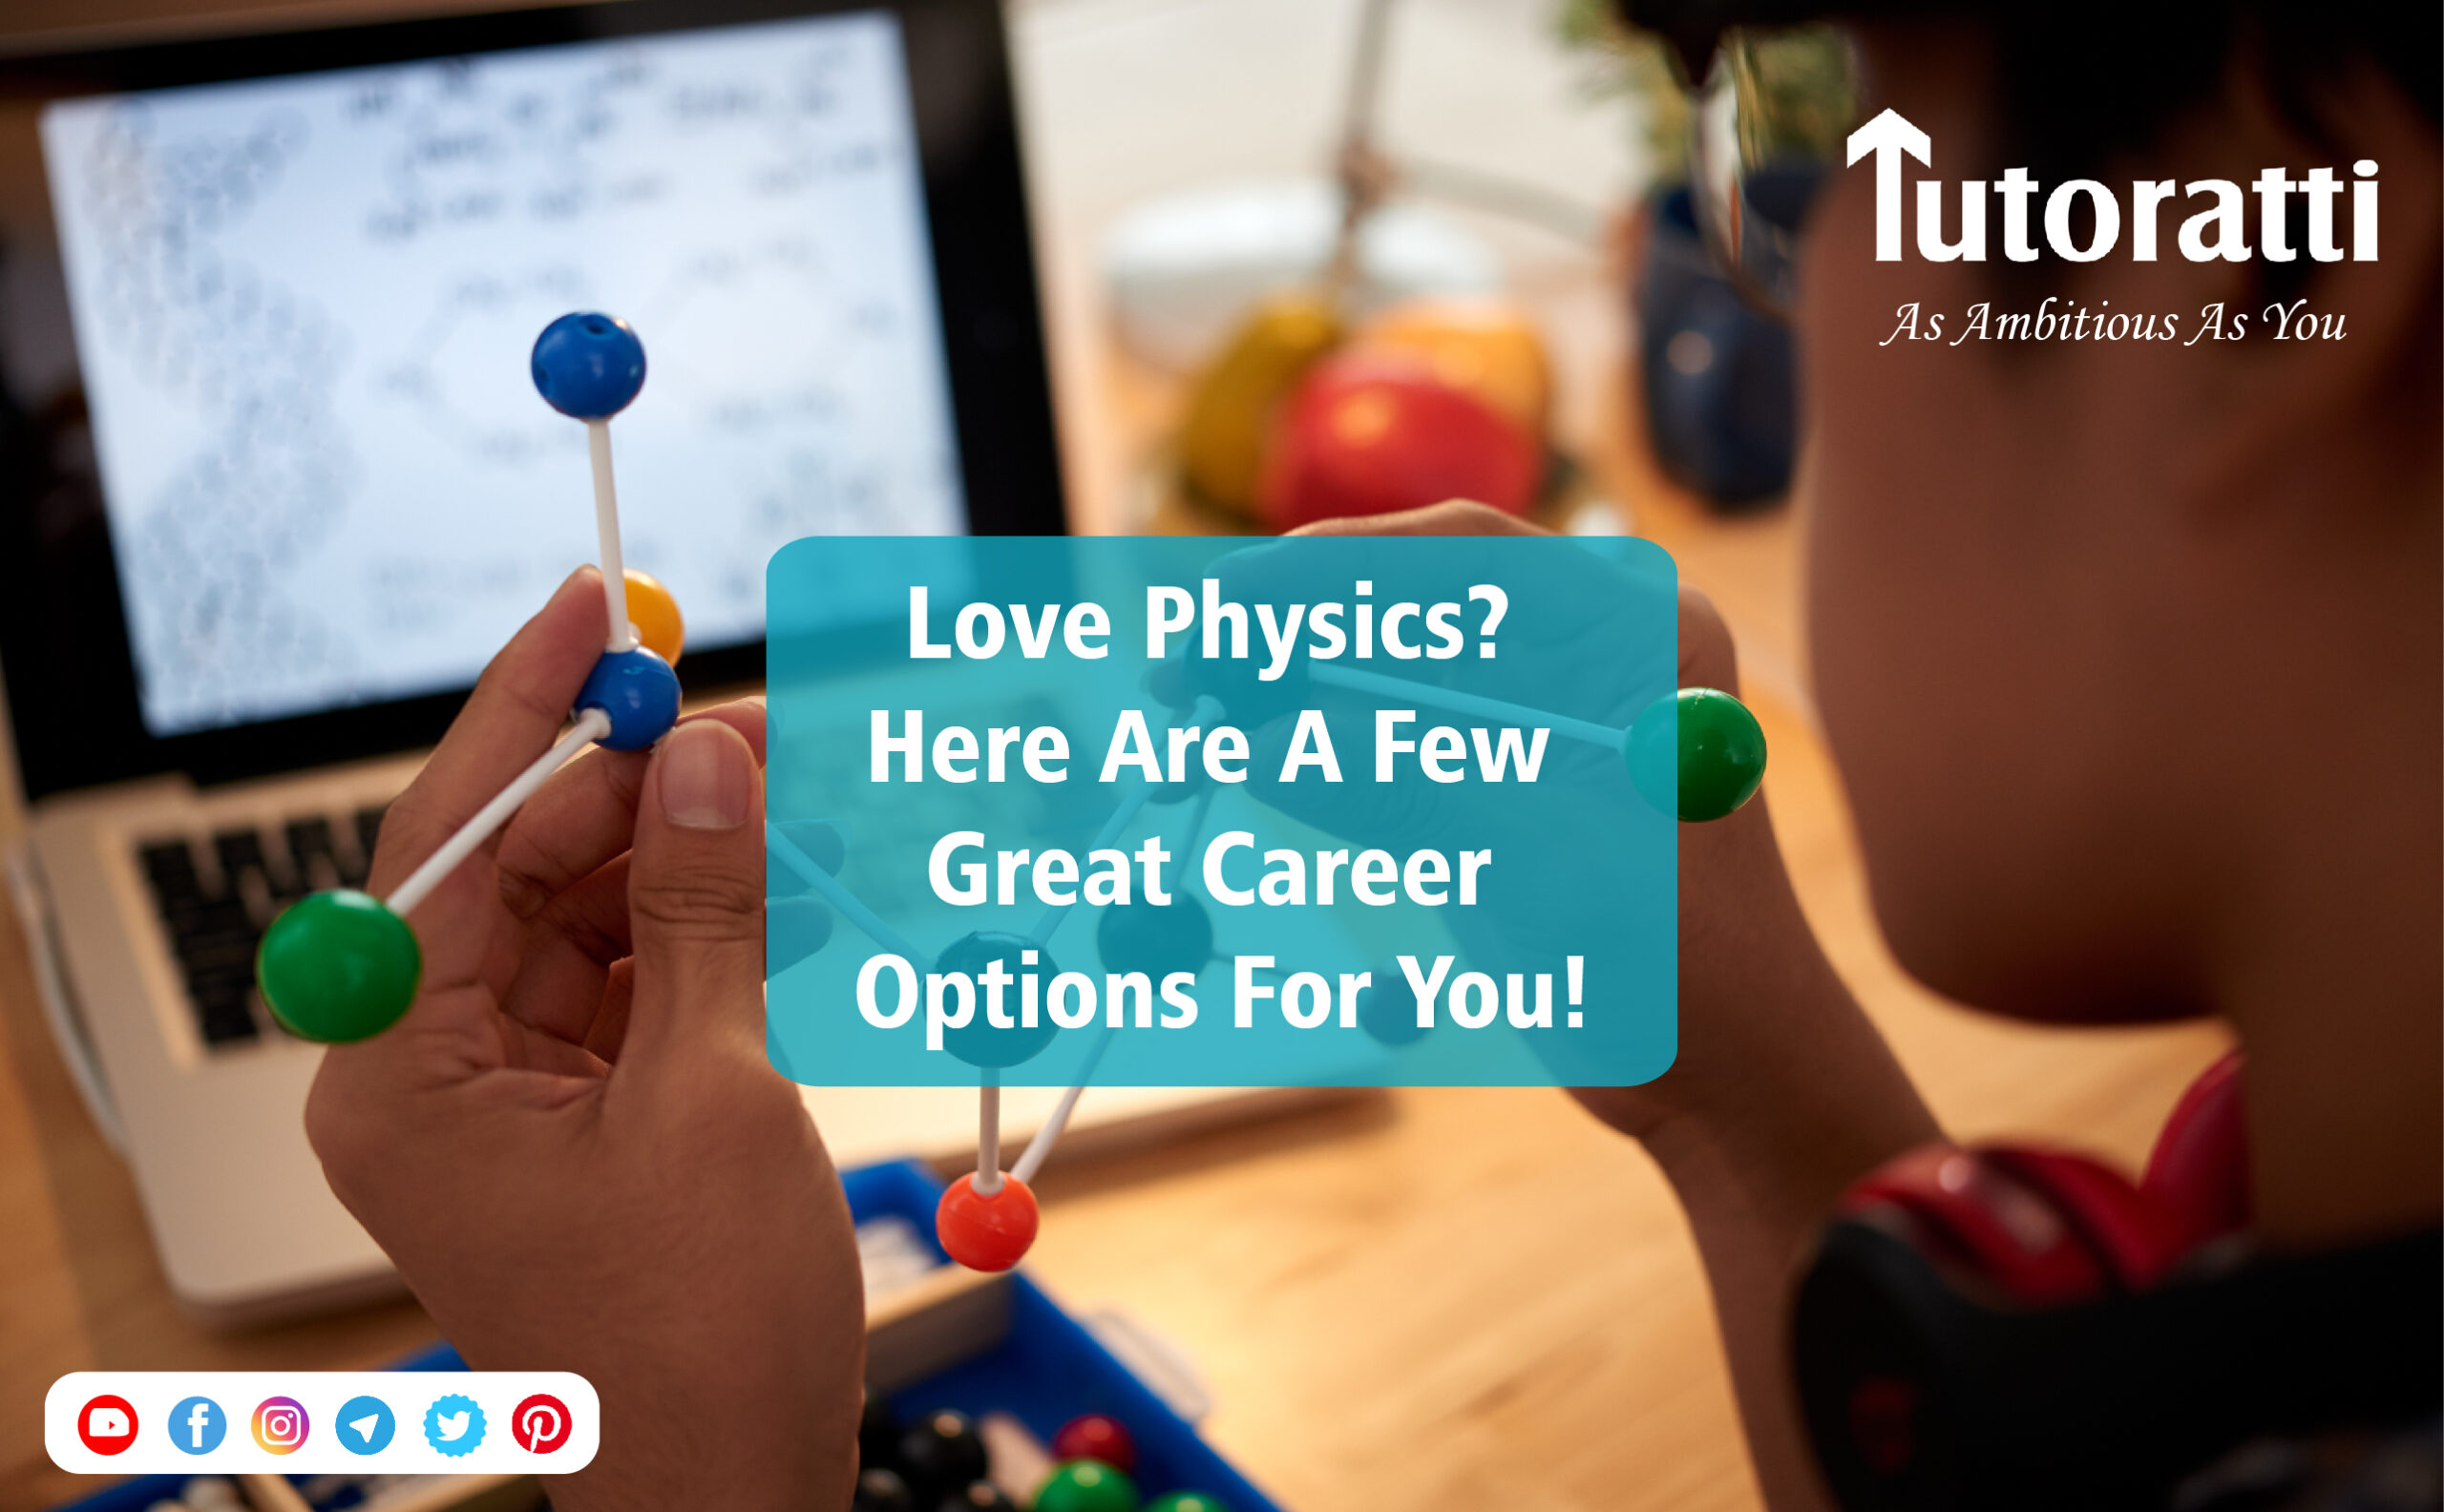 Love Physics? Here are a few great career options for you!